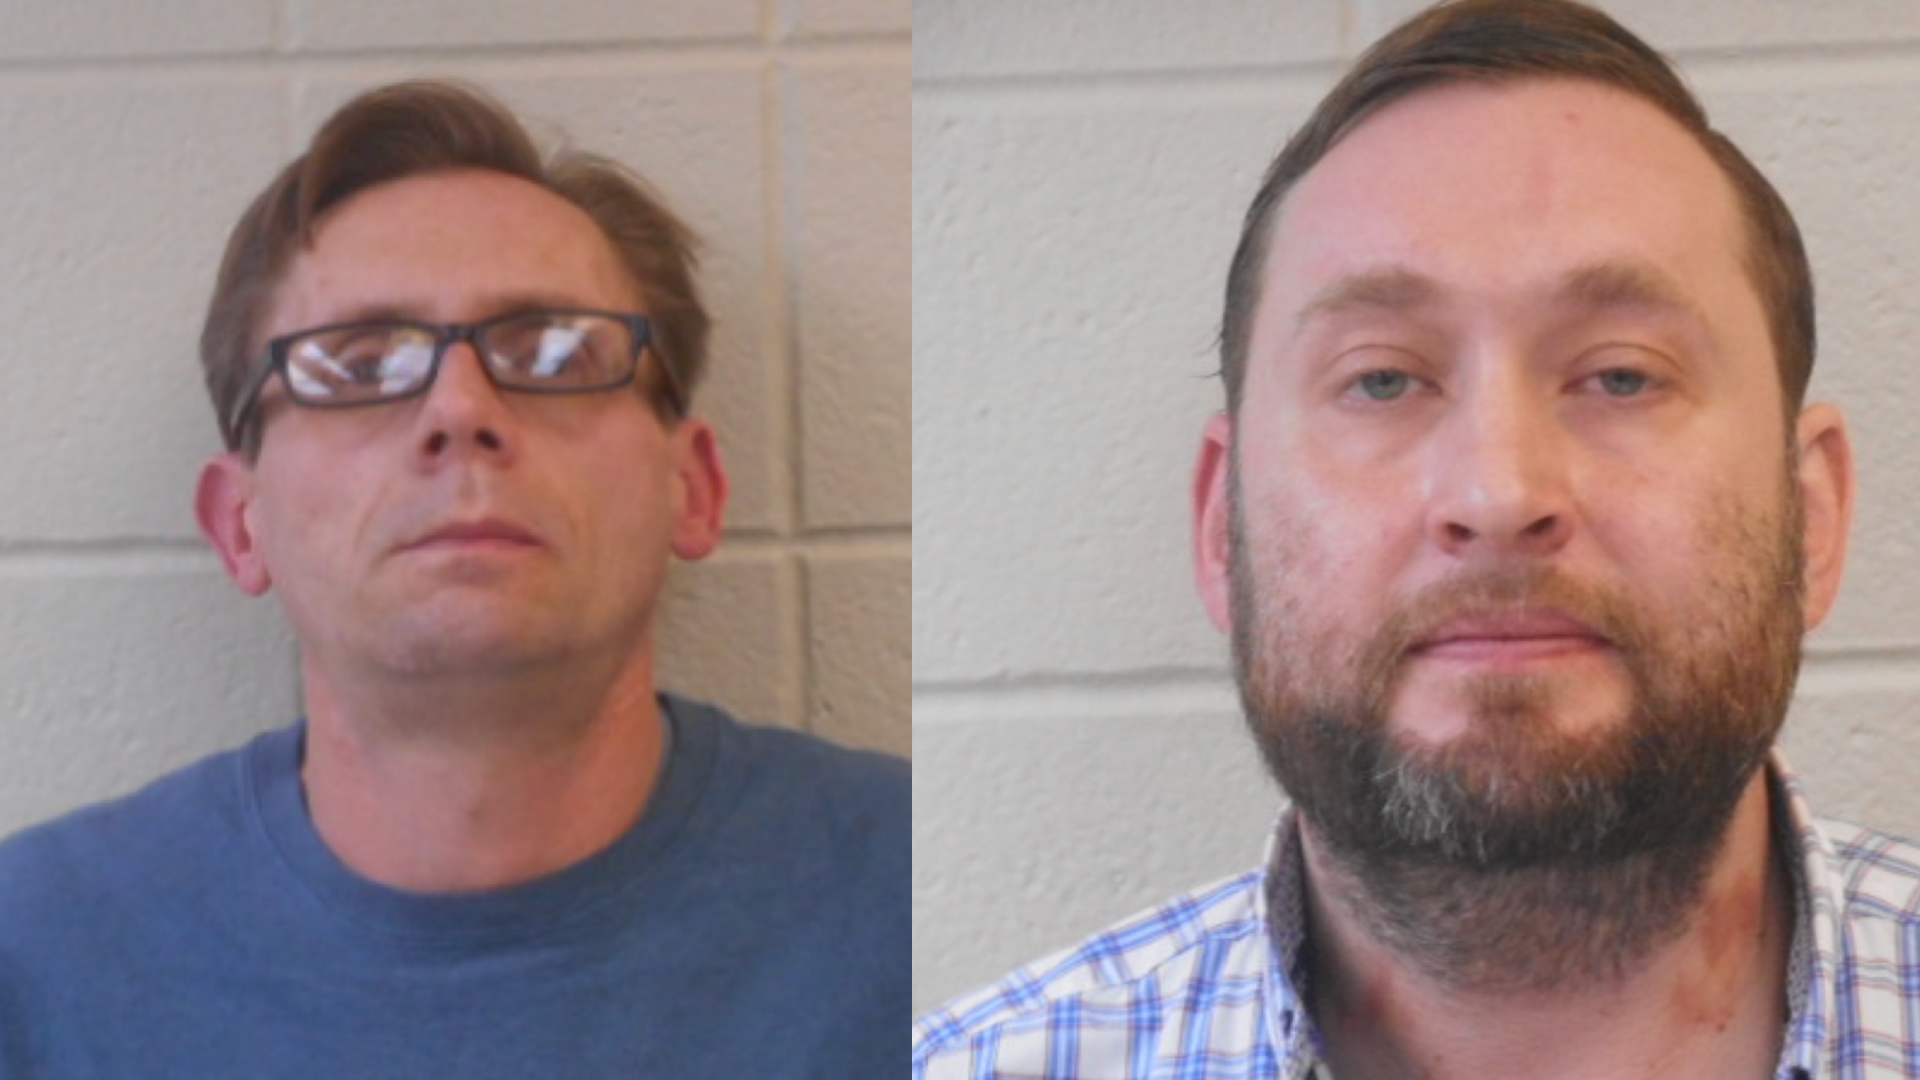 Two Arkansas chemistry professors — Terry David Bateman (left) and Bradley Allen Rowland (right) — were arrested for allegedly making methamphetamine and using drug paraphernalia.